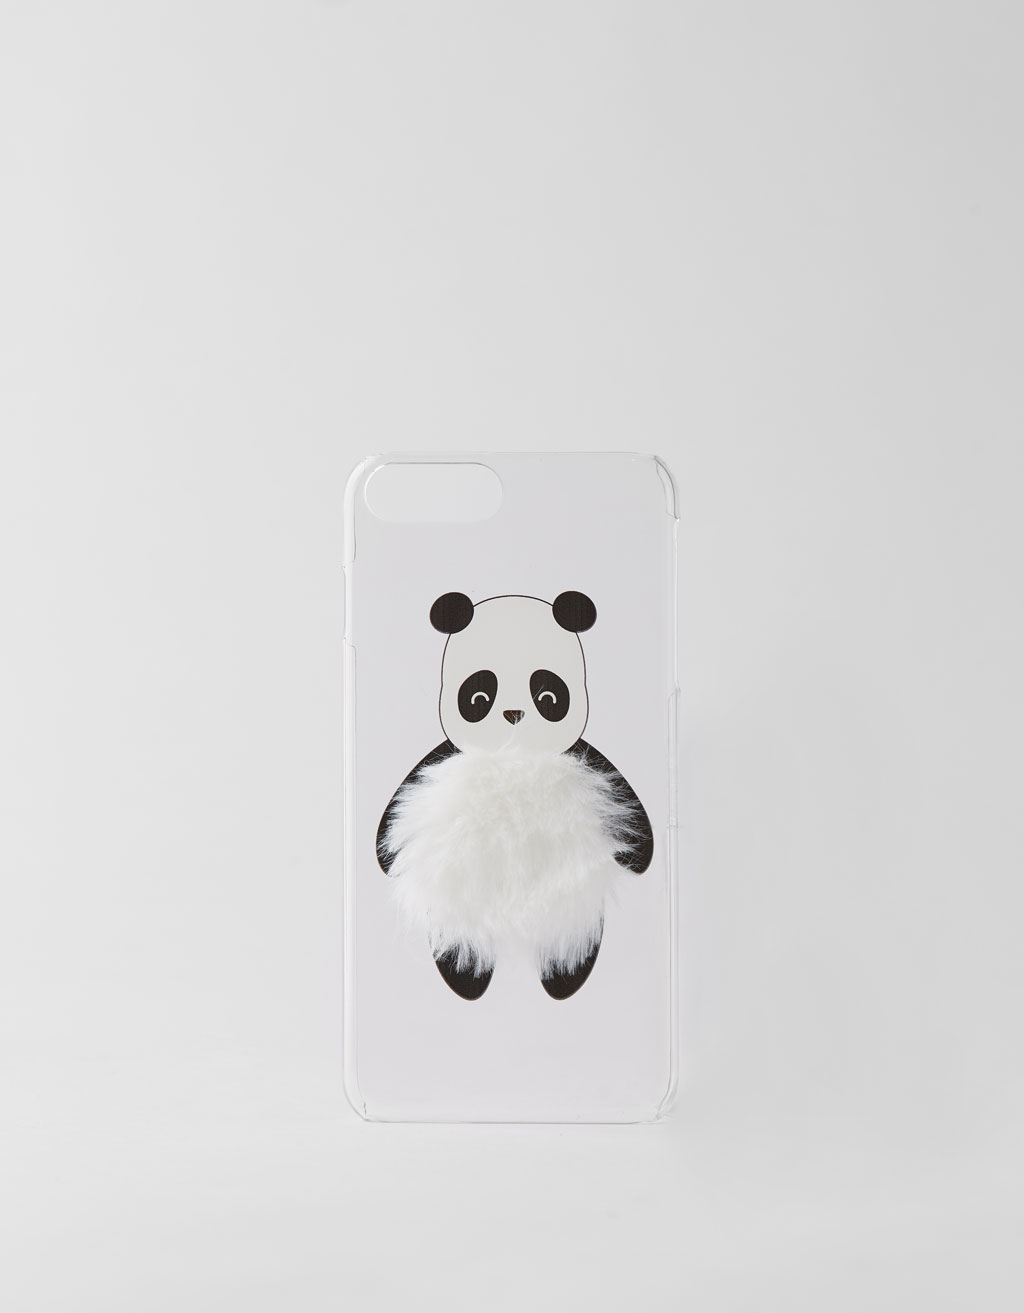 Hoesje Panda voor iPhone 6 plus/7 plus/8 plus